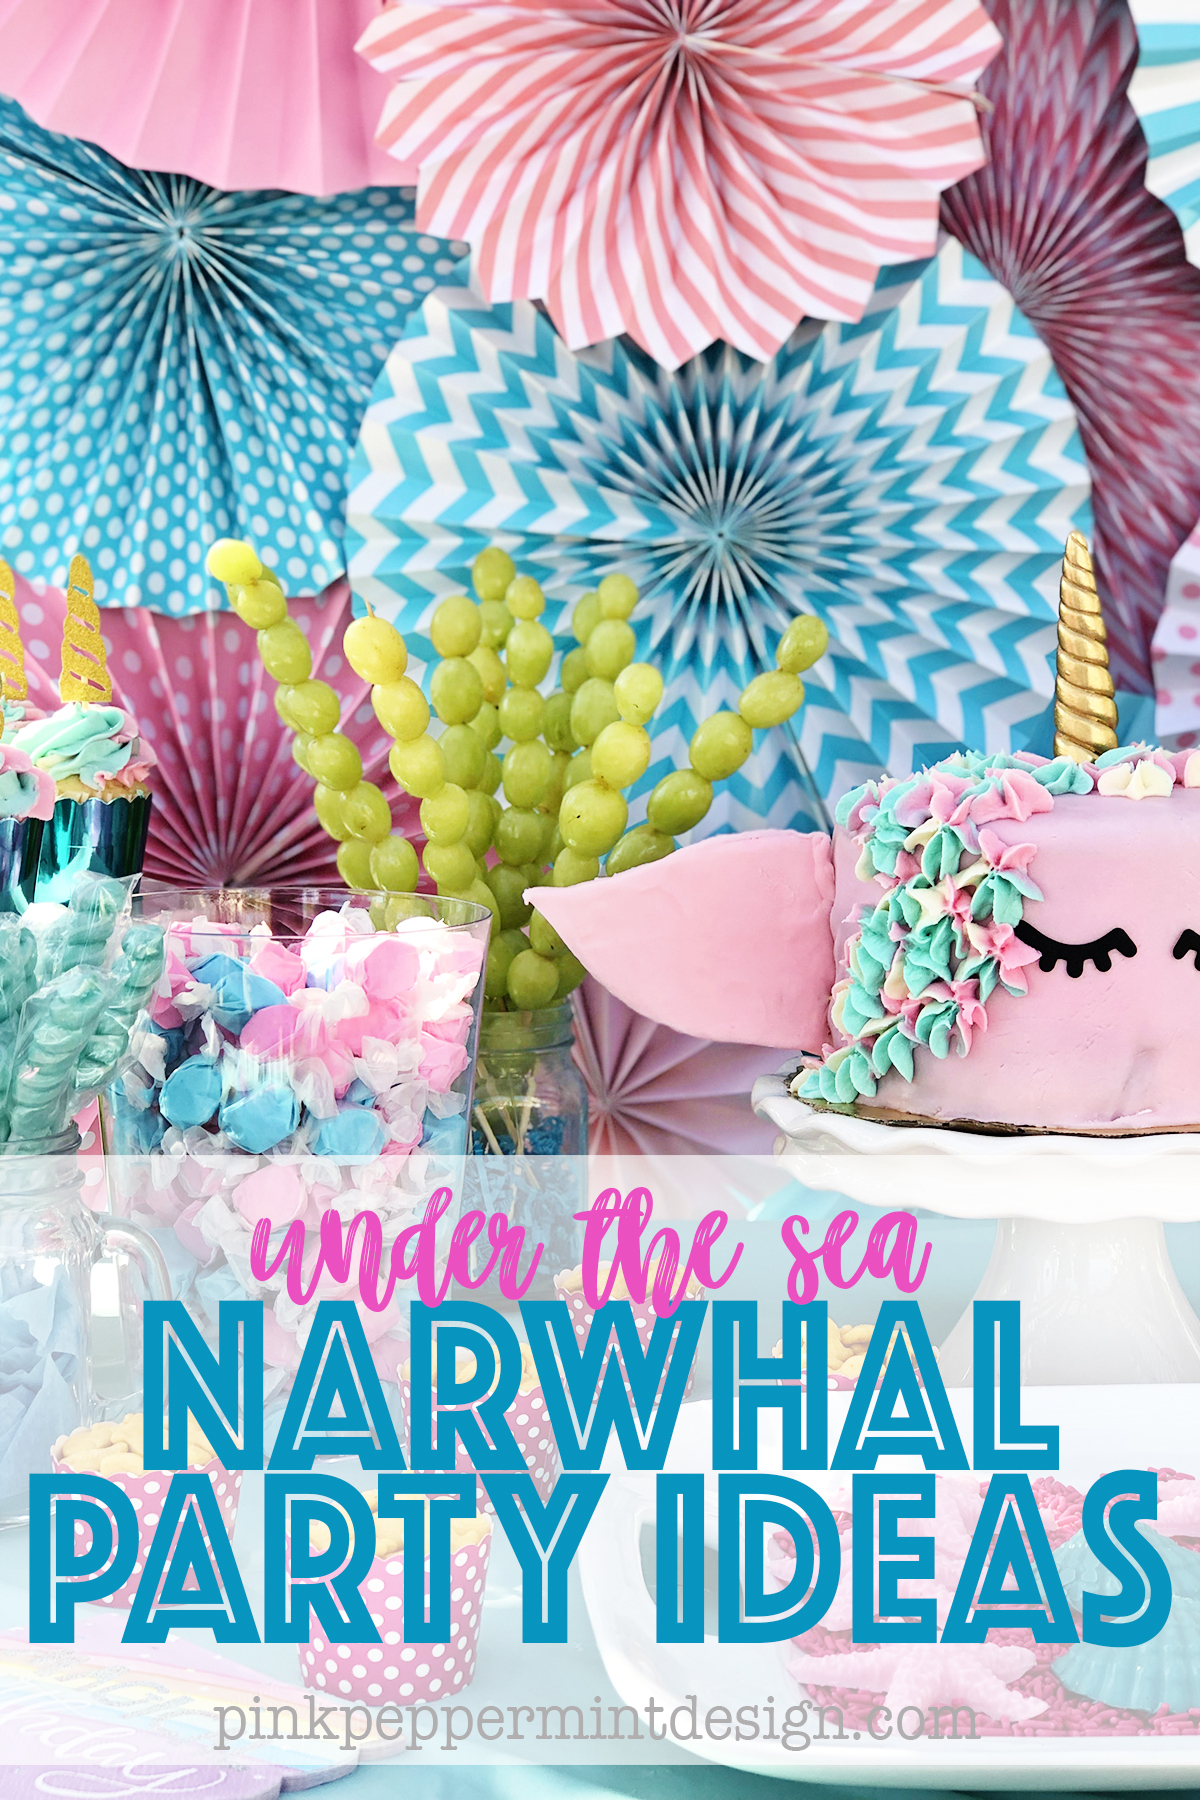 Under the Sea Party Ideas : The Narwhal Party